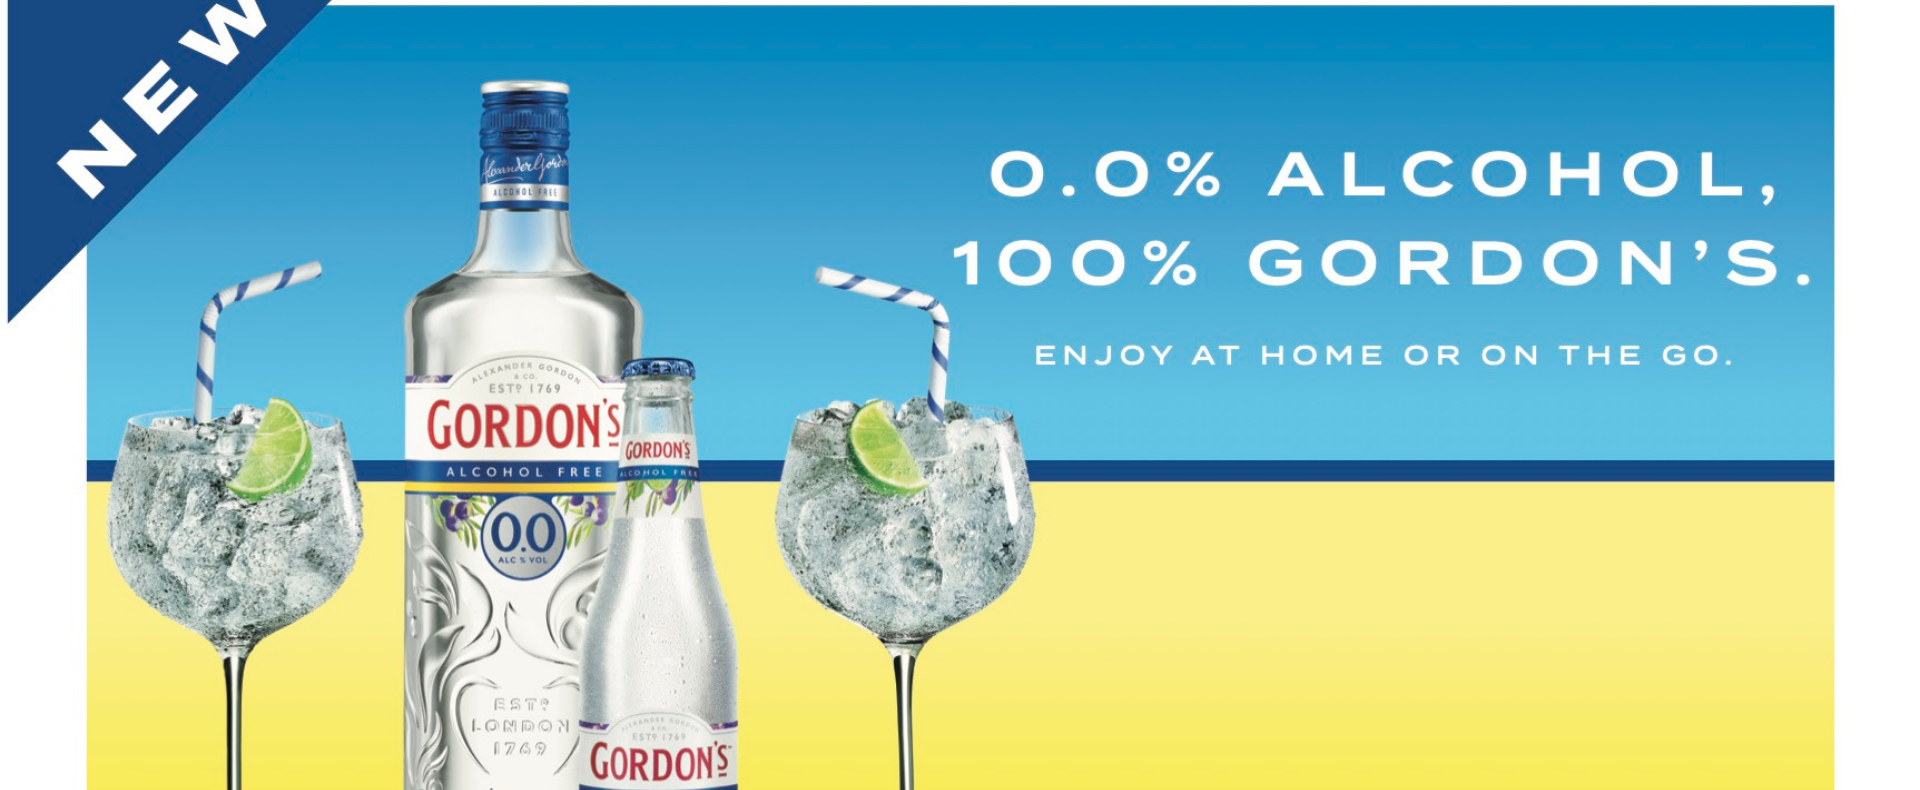 This July we're introducing a new member to Gordon's